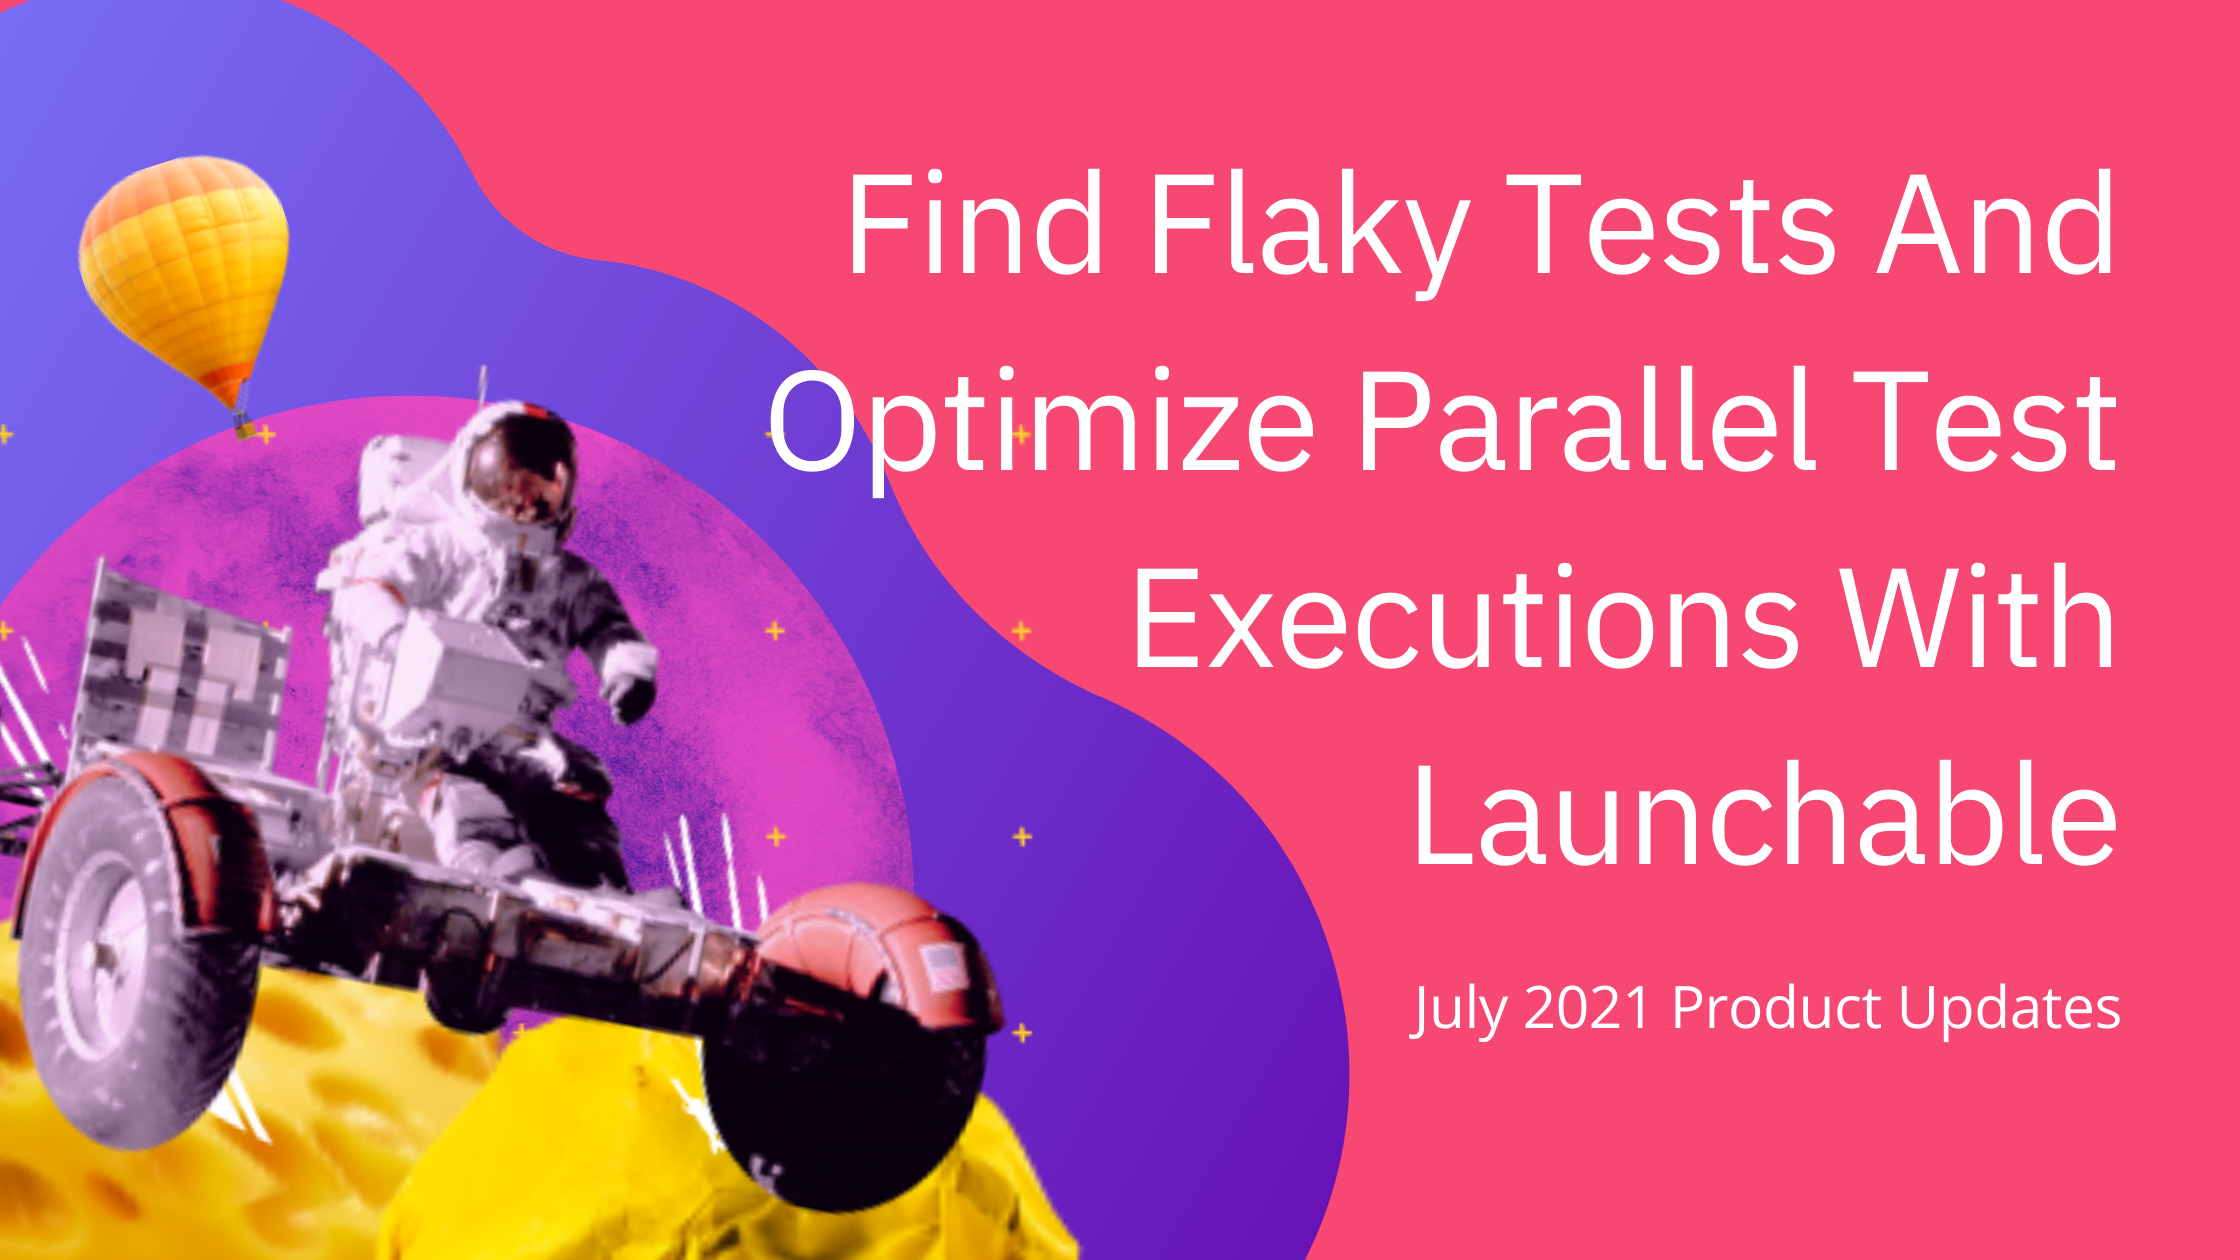 Find Flaky Tests And Optimize Parallel Test Executions With Launchable